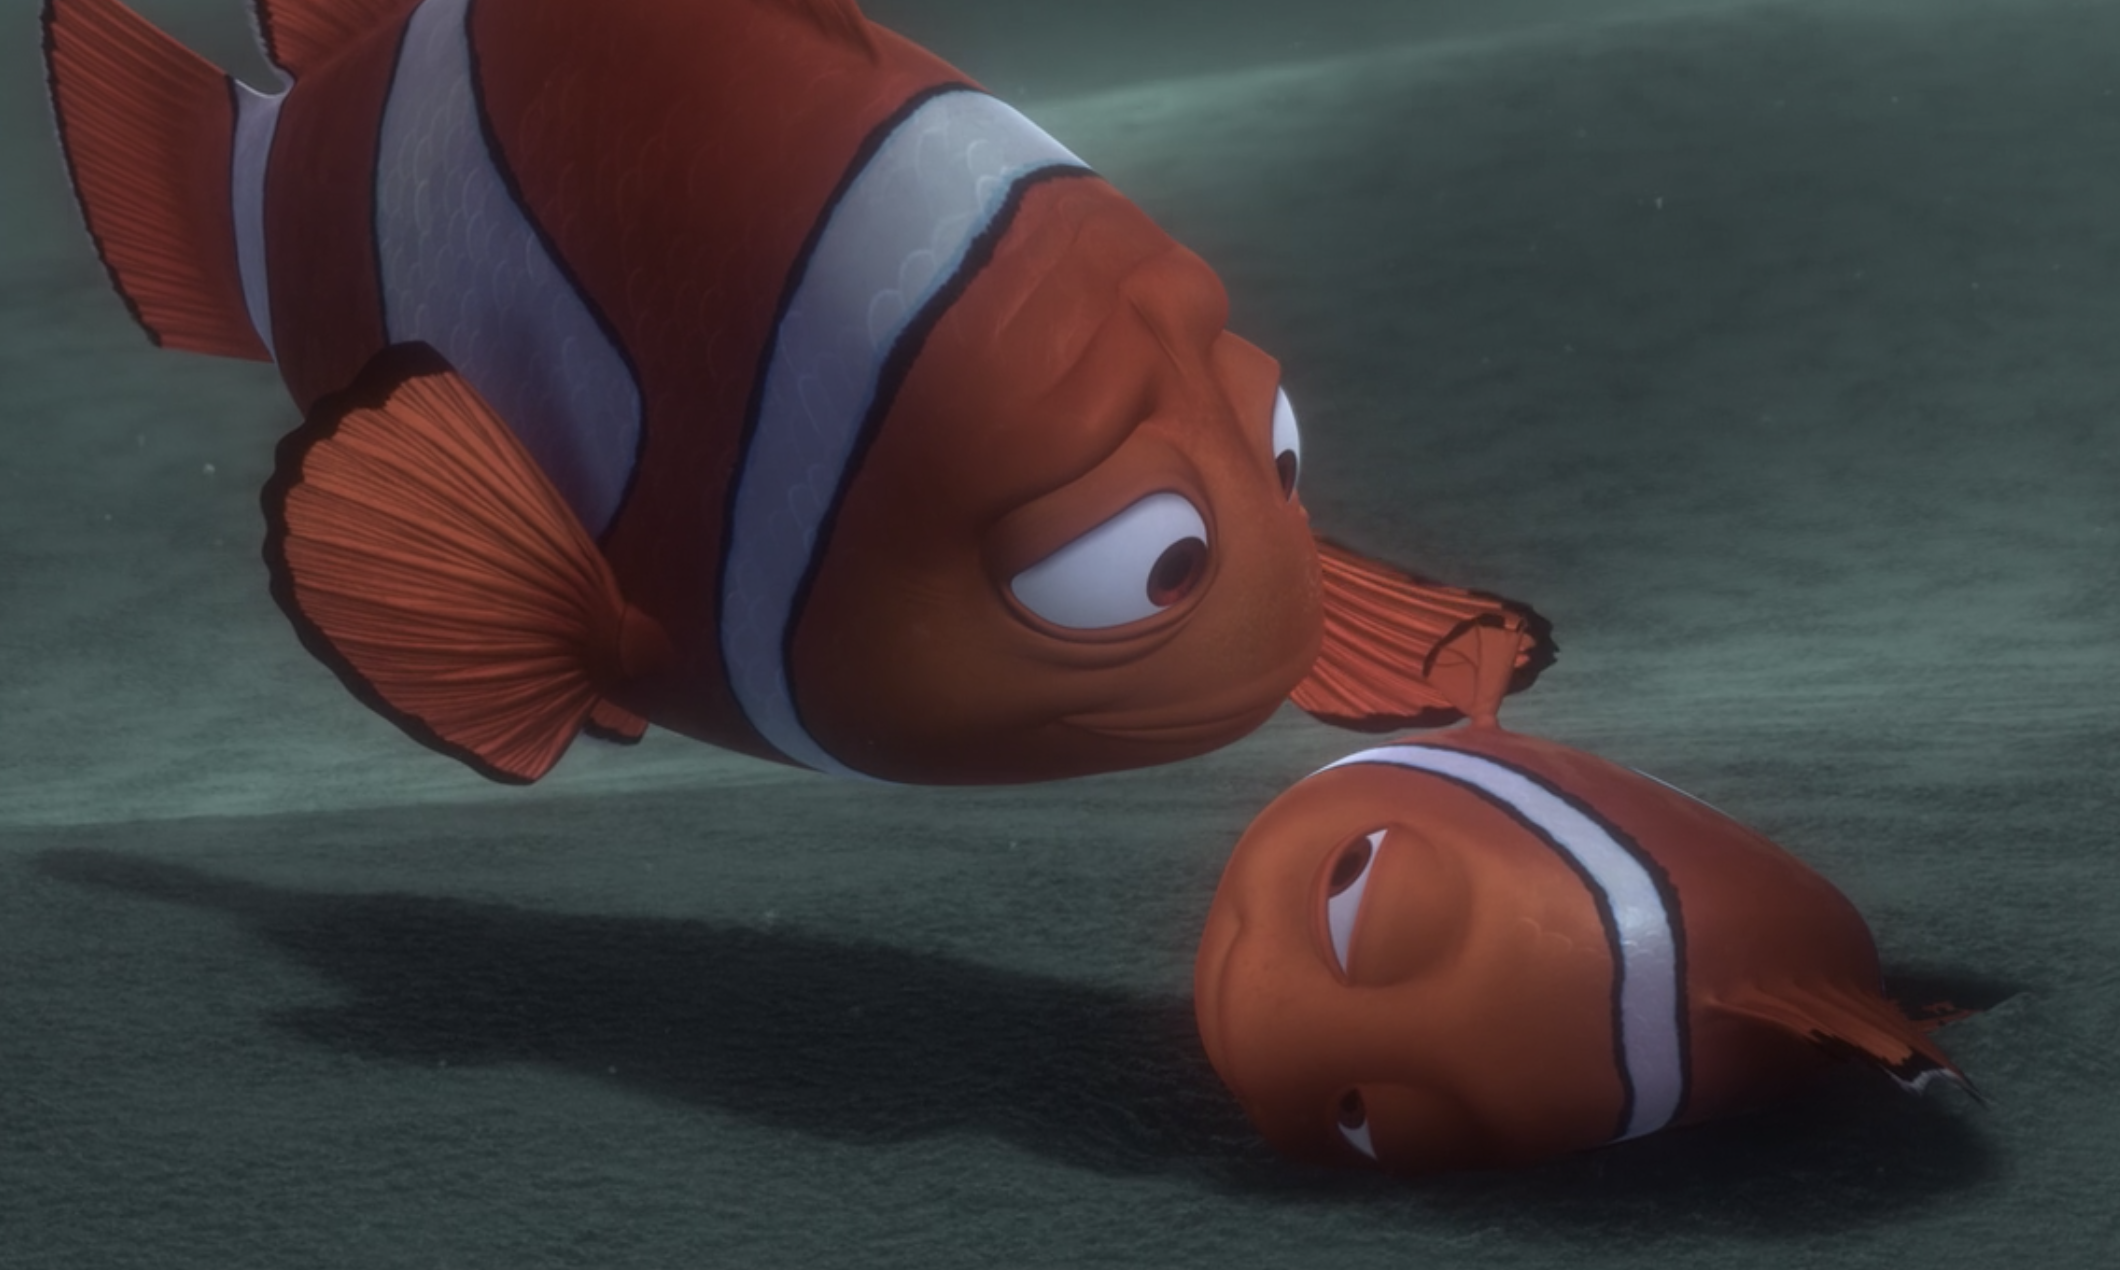 Marlin gently touches Nemo's fin as he lies on the ground